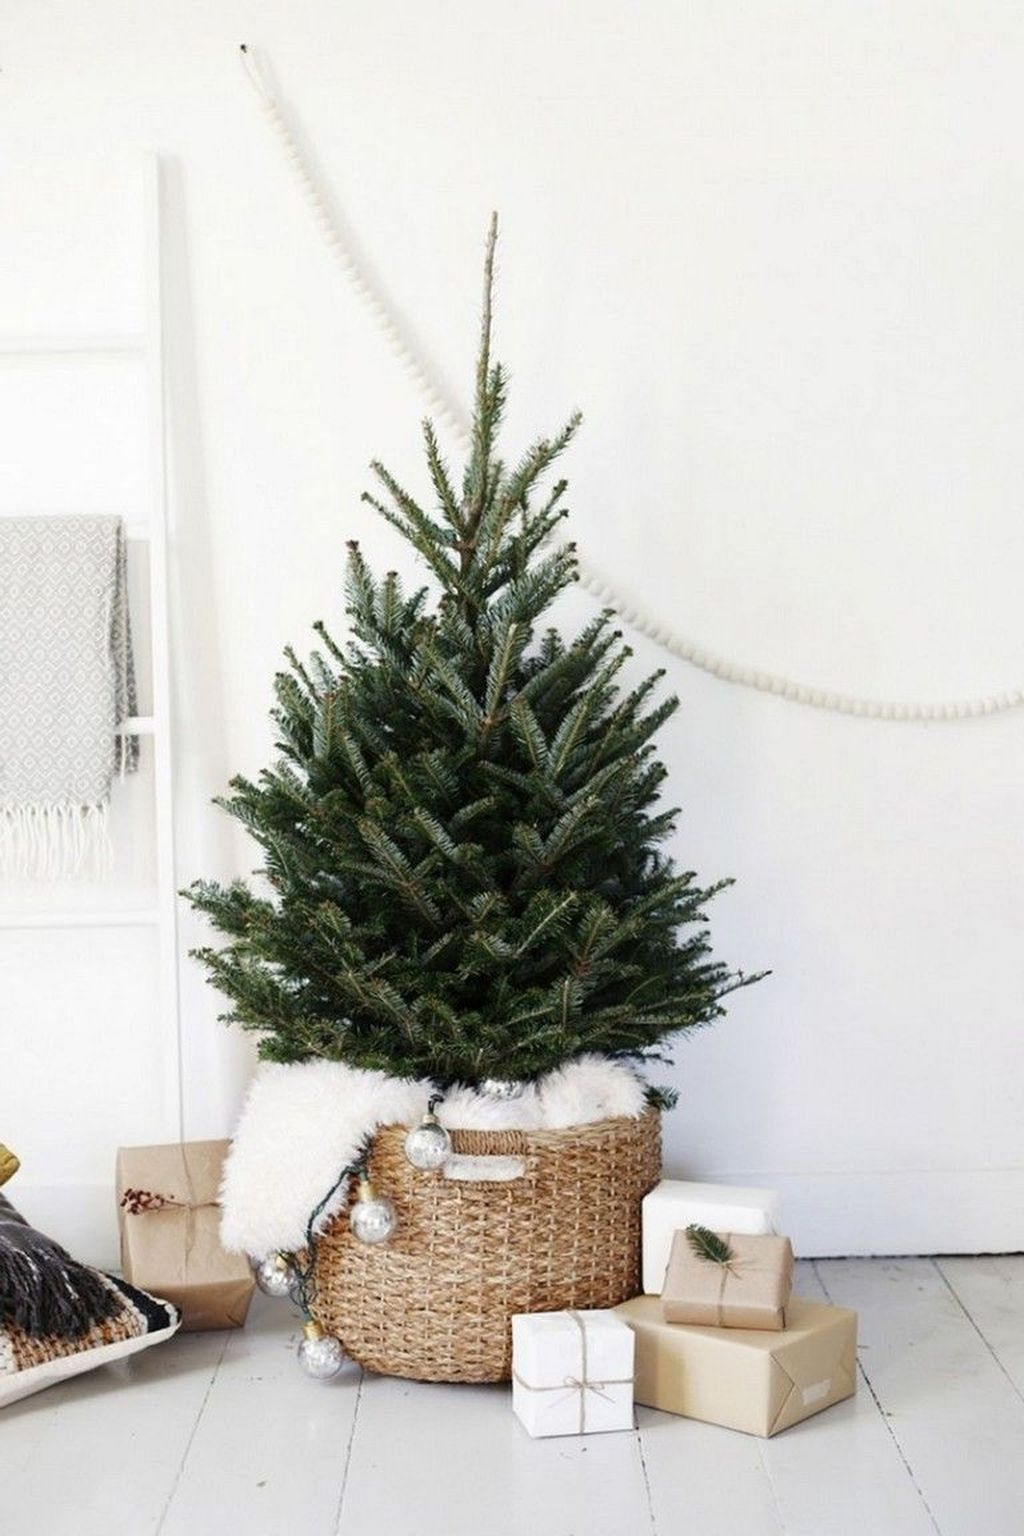 55 Small Apartment Christmas Decor Ideas #smallapartmentchristmasdecor